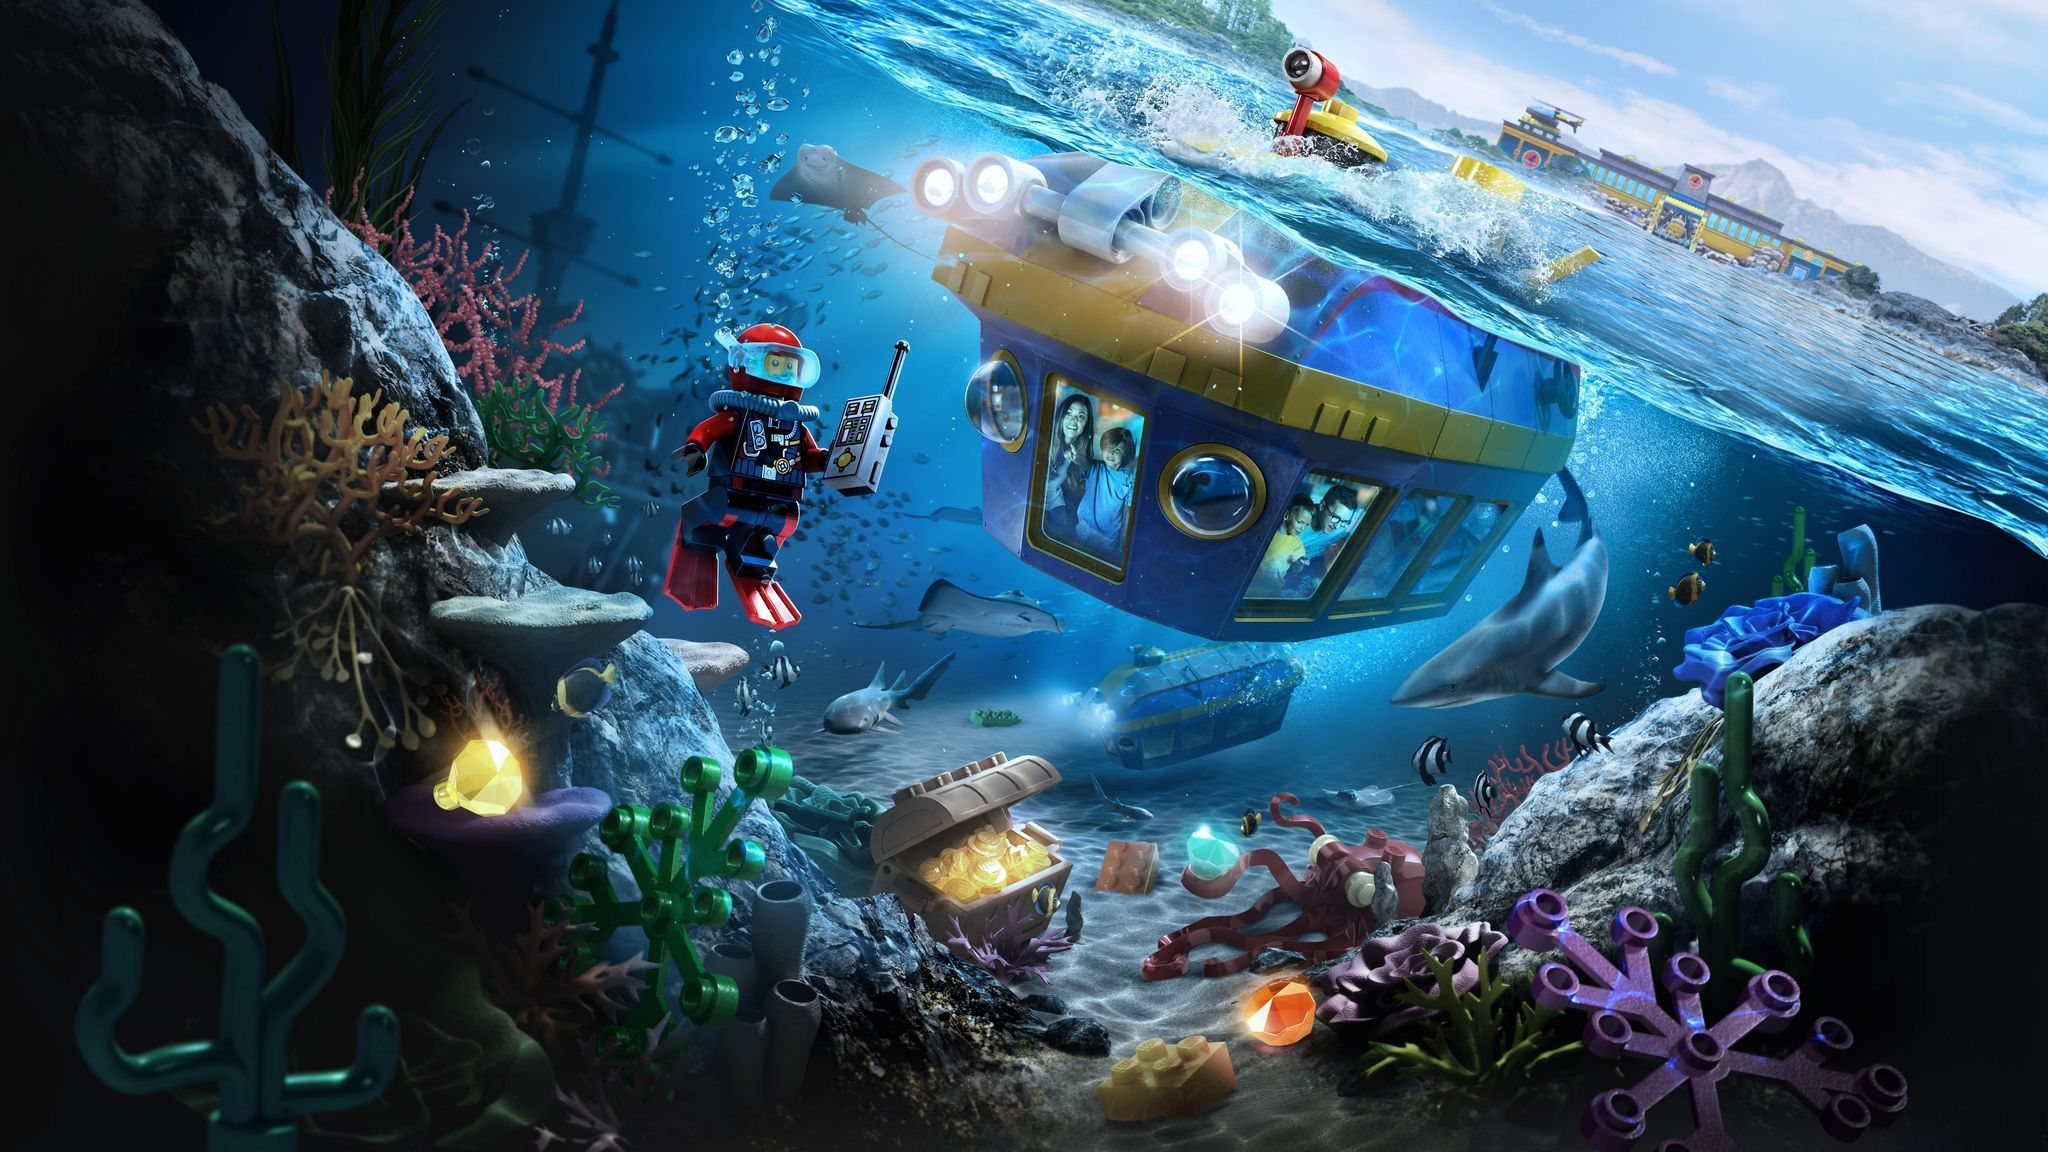 Image result for legoland submarine'